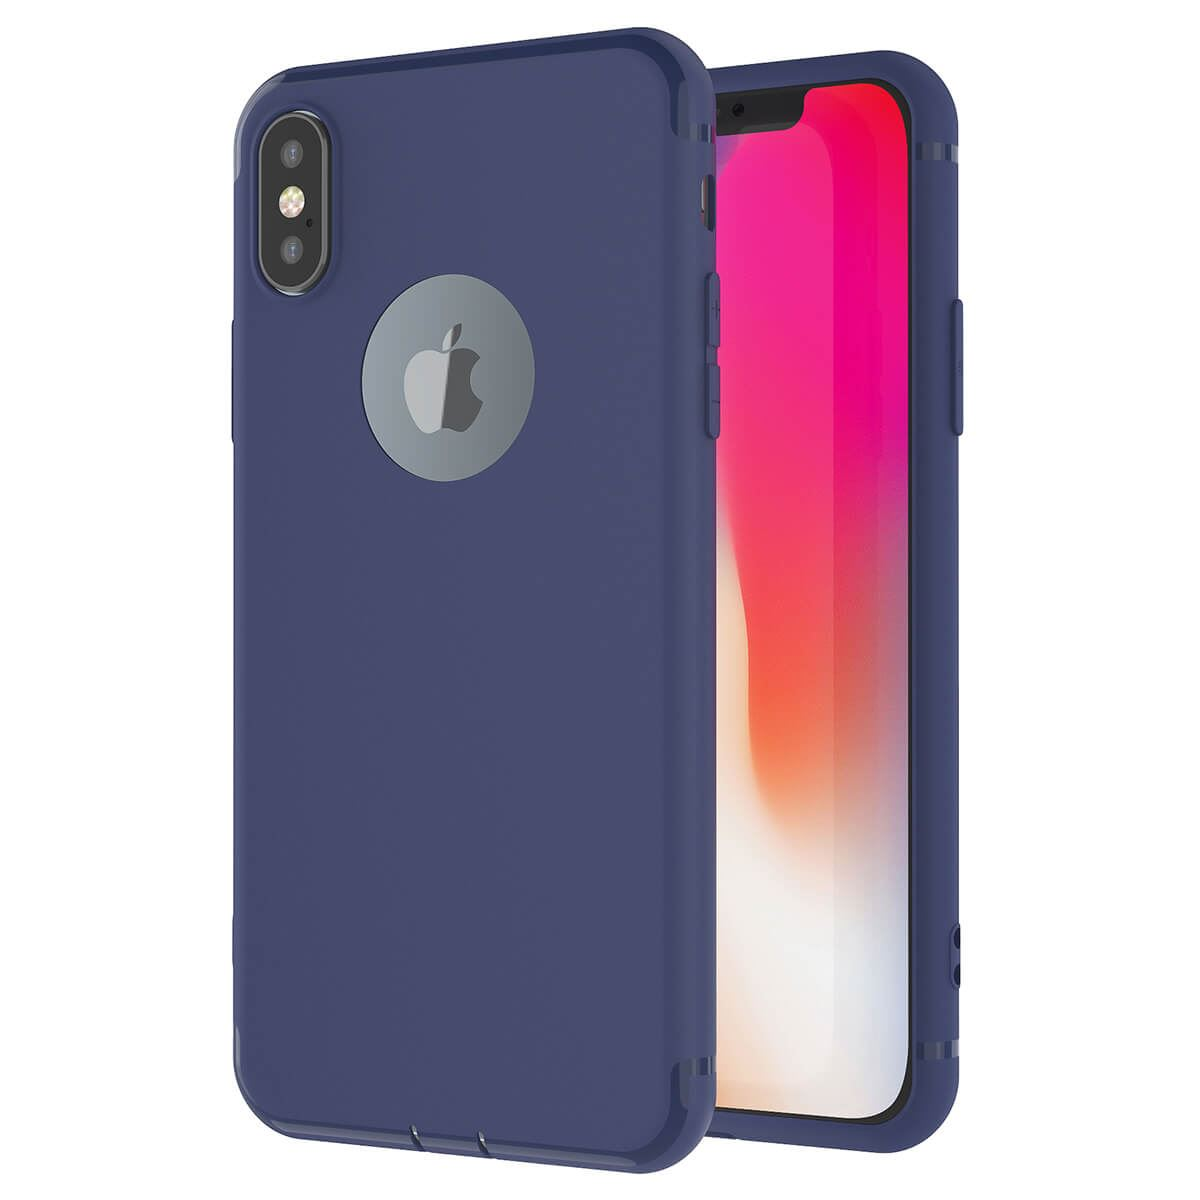 Ultra-Thin-Case-Apple-iPhone-10-8-7-Plus-6-5-Luxury-Slim-Silicone-TPU-Soft-Cover thumbnail 3